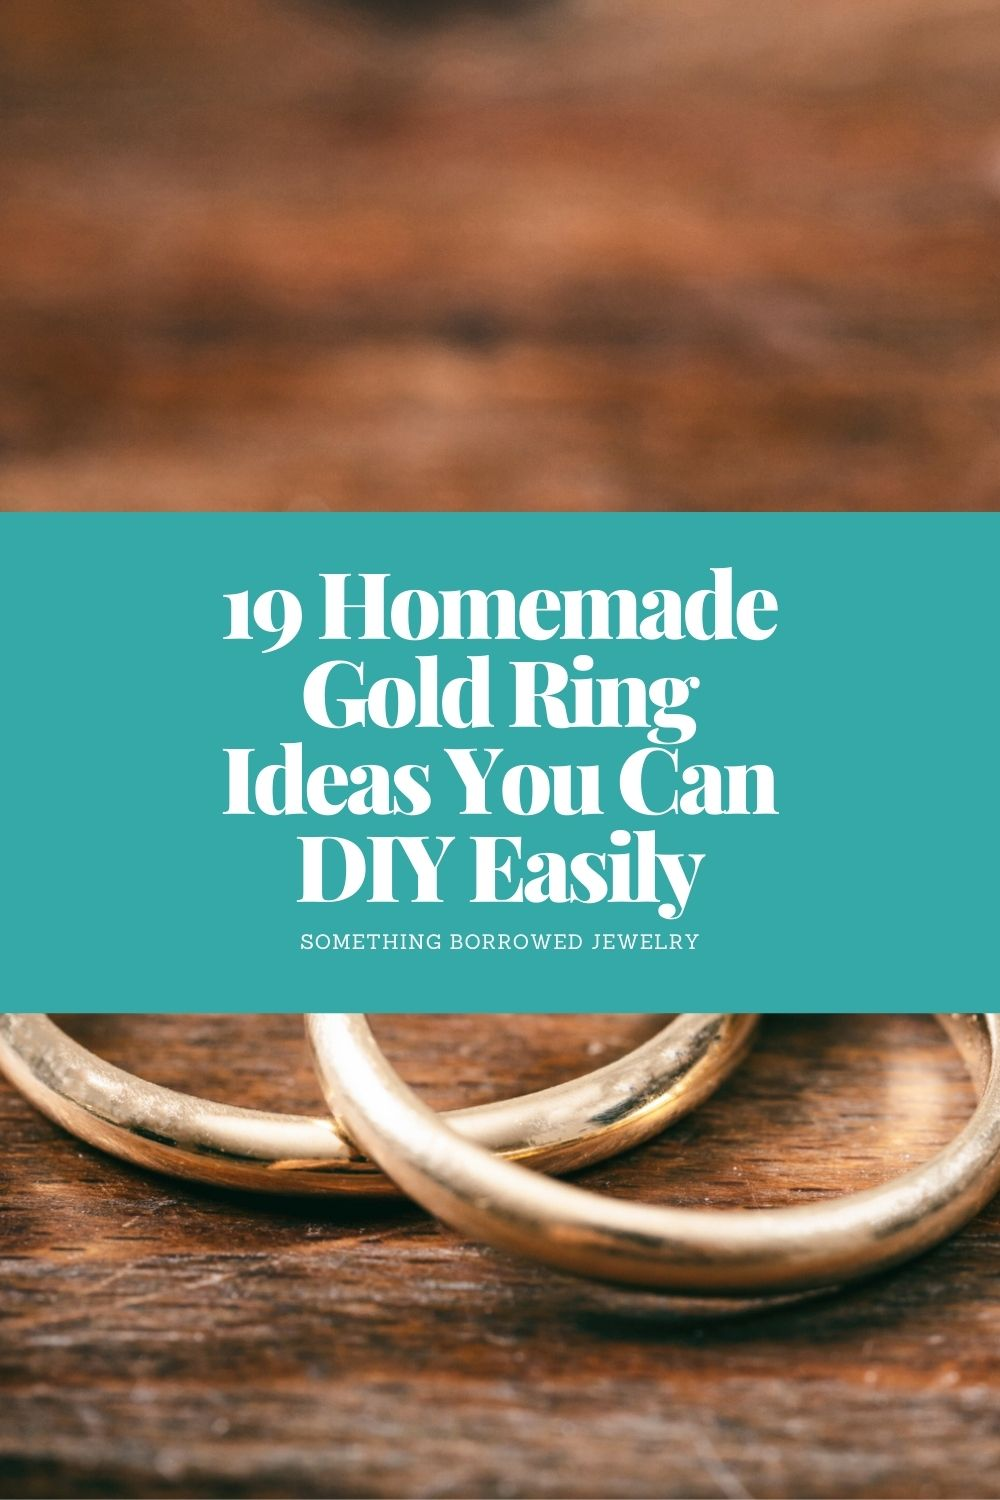 19 Homemade Gold Ring Ideas You Can DIY Easily pin